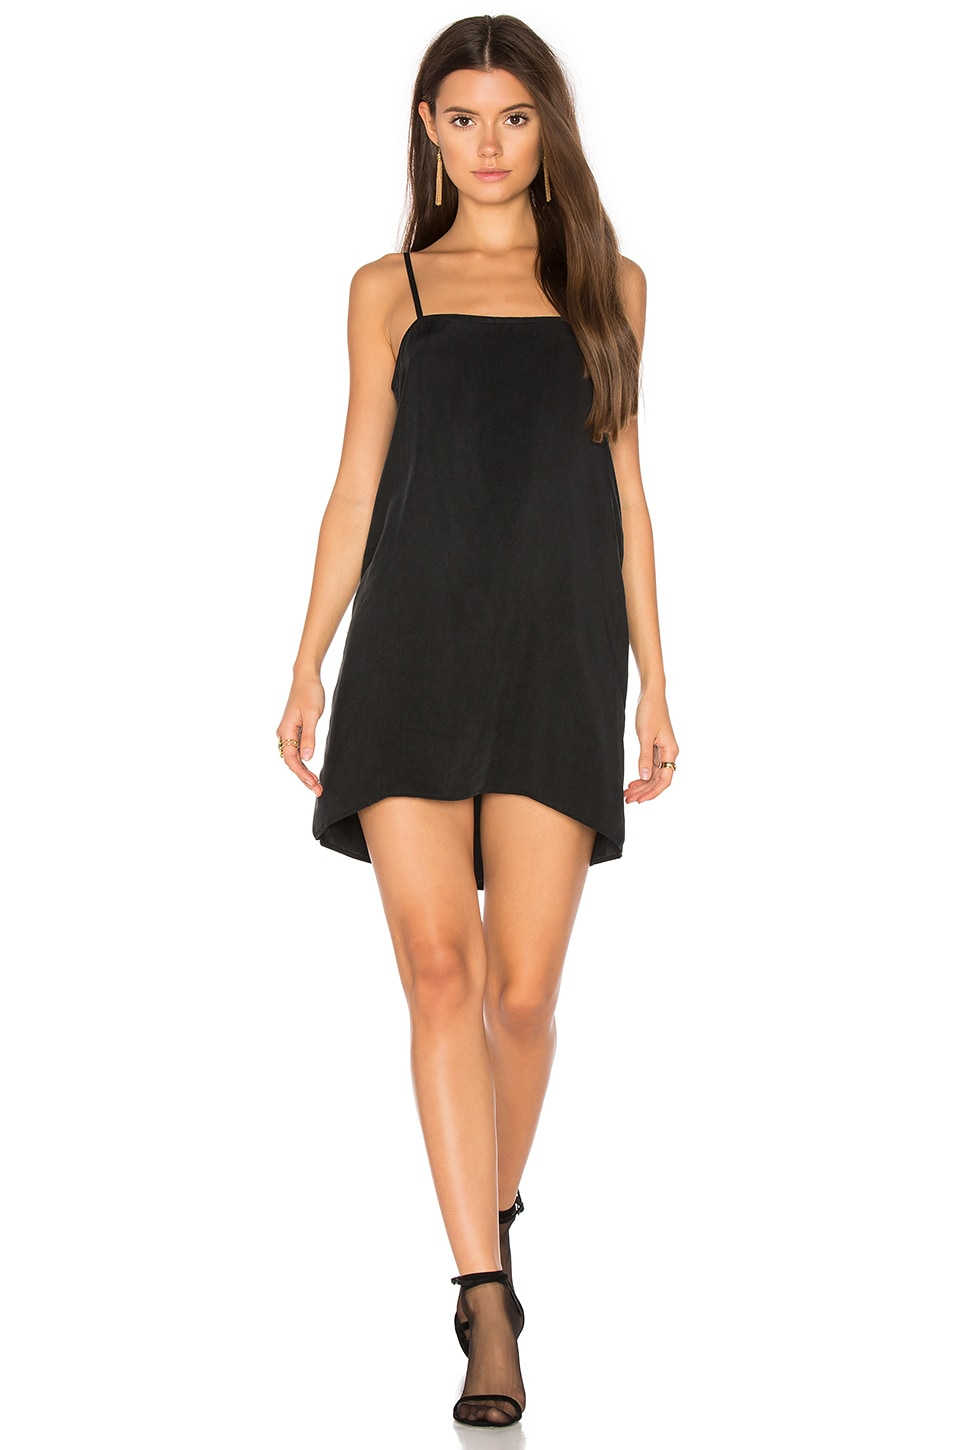 FLYNN SKYE x REVOLVE Summer Slip Dress in Black